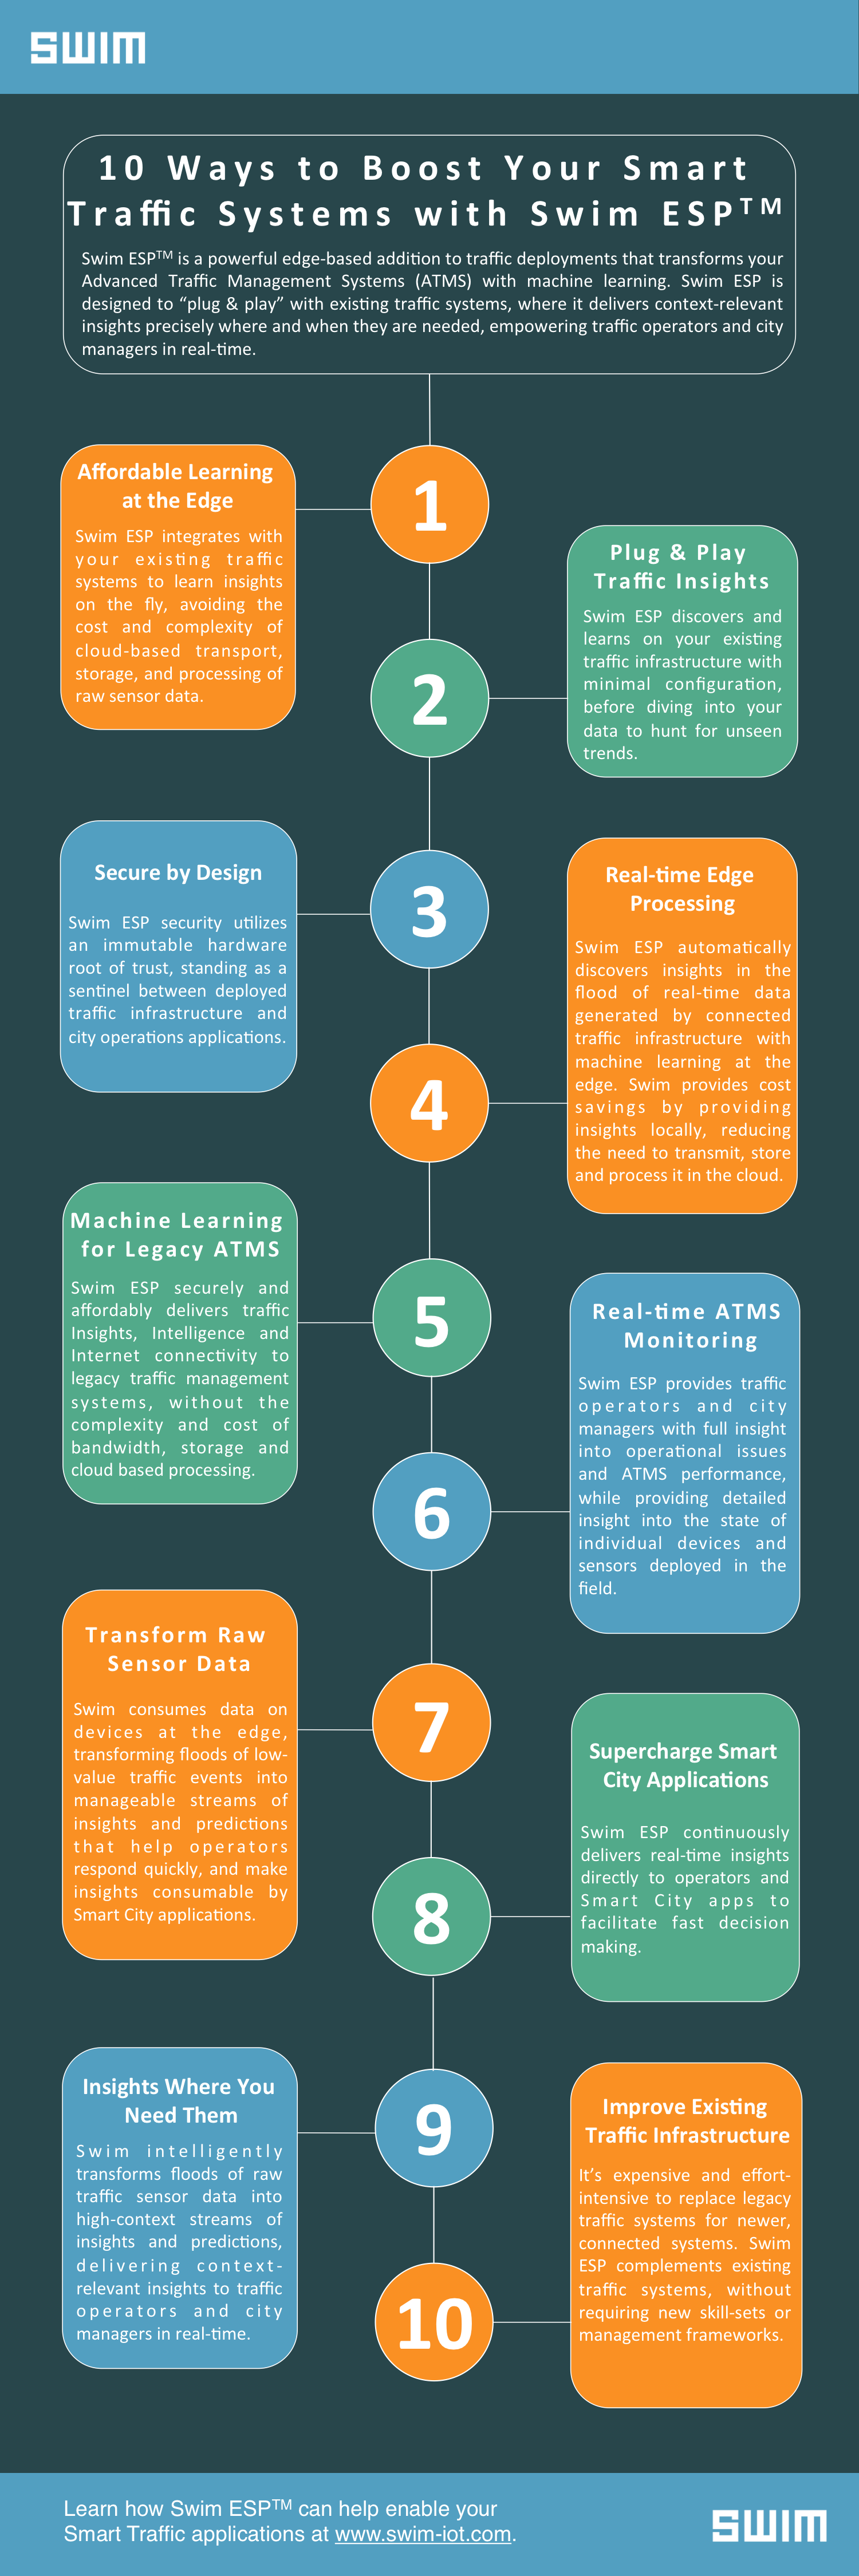 Swim_10 Ways to Boost Your ATMS with Swim ESP - Infographic